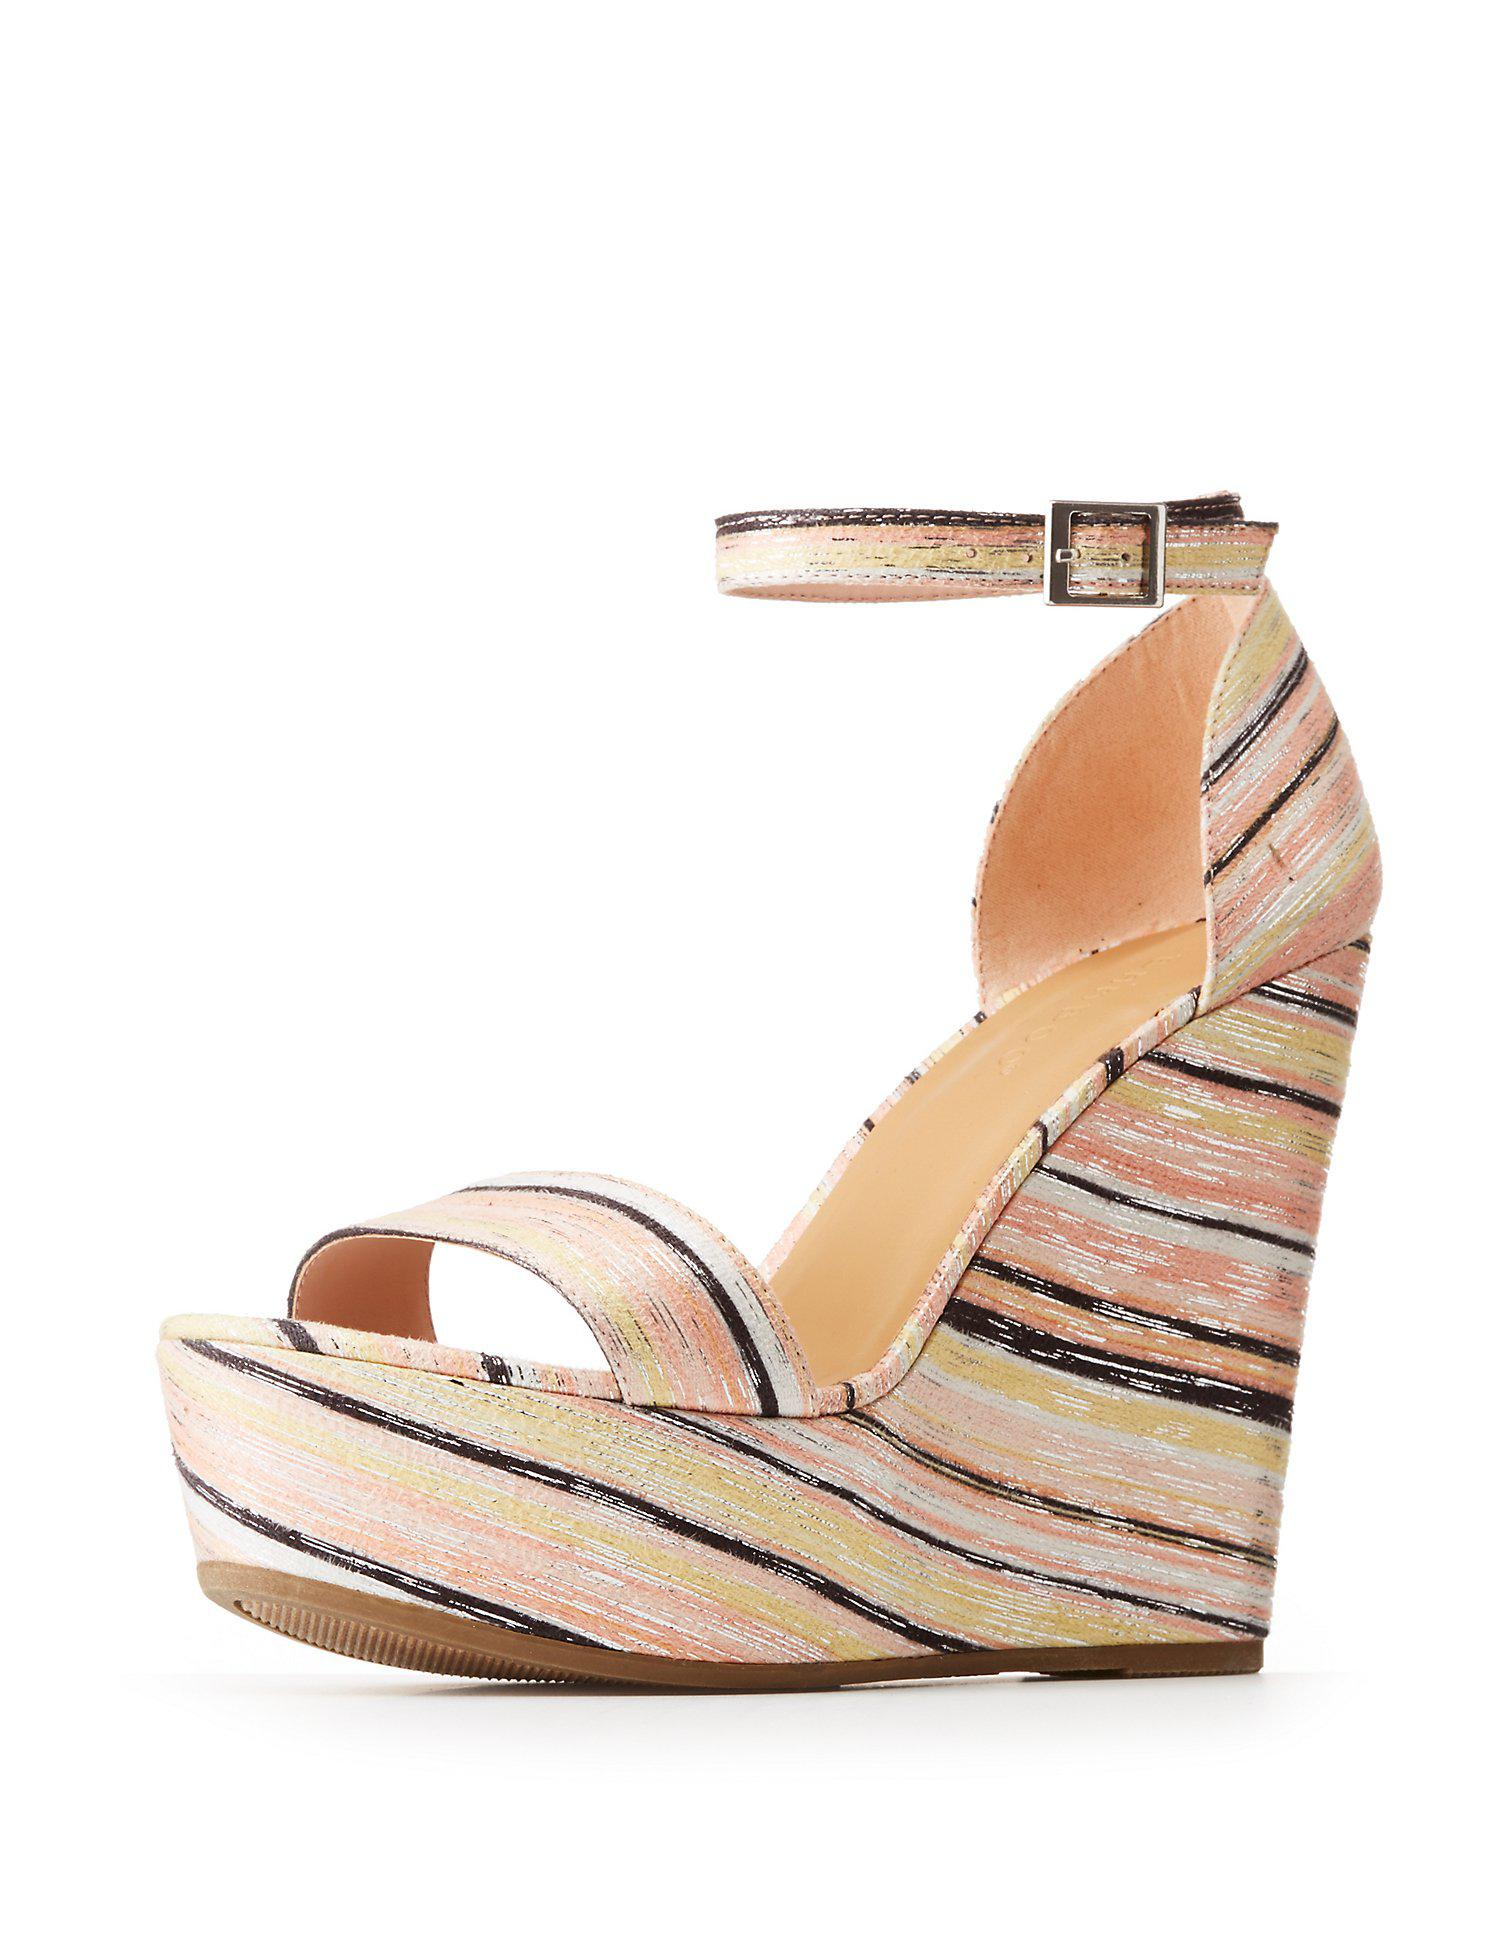 45e670e5d591 Lyst - Charlotte Russe Bamboo Striped Platform Wedges Sandals in Natural